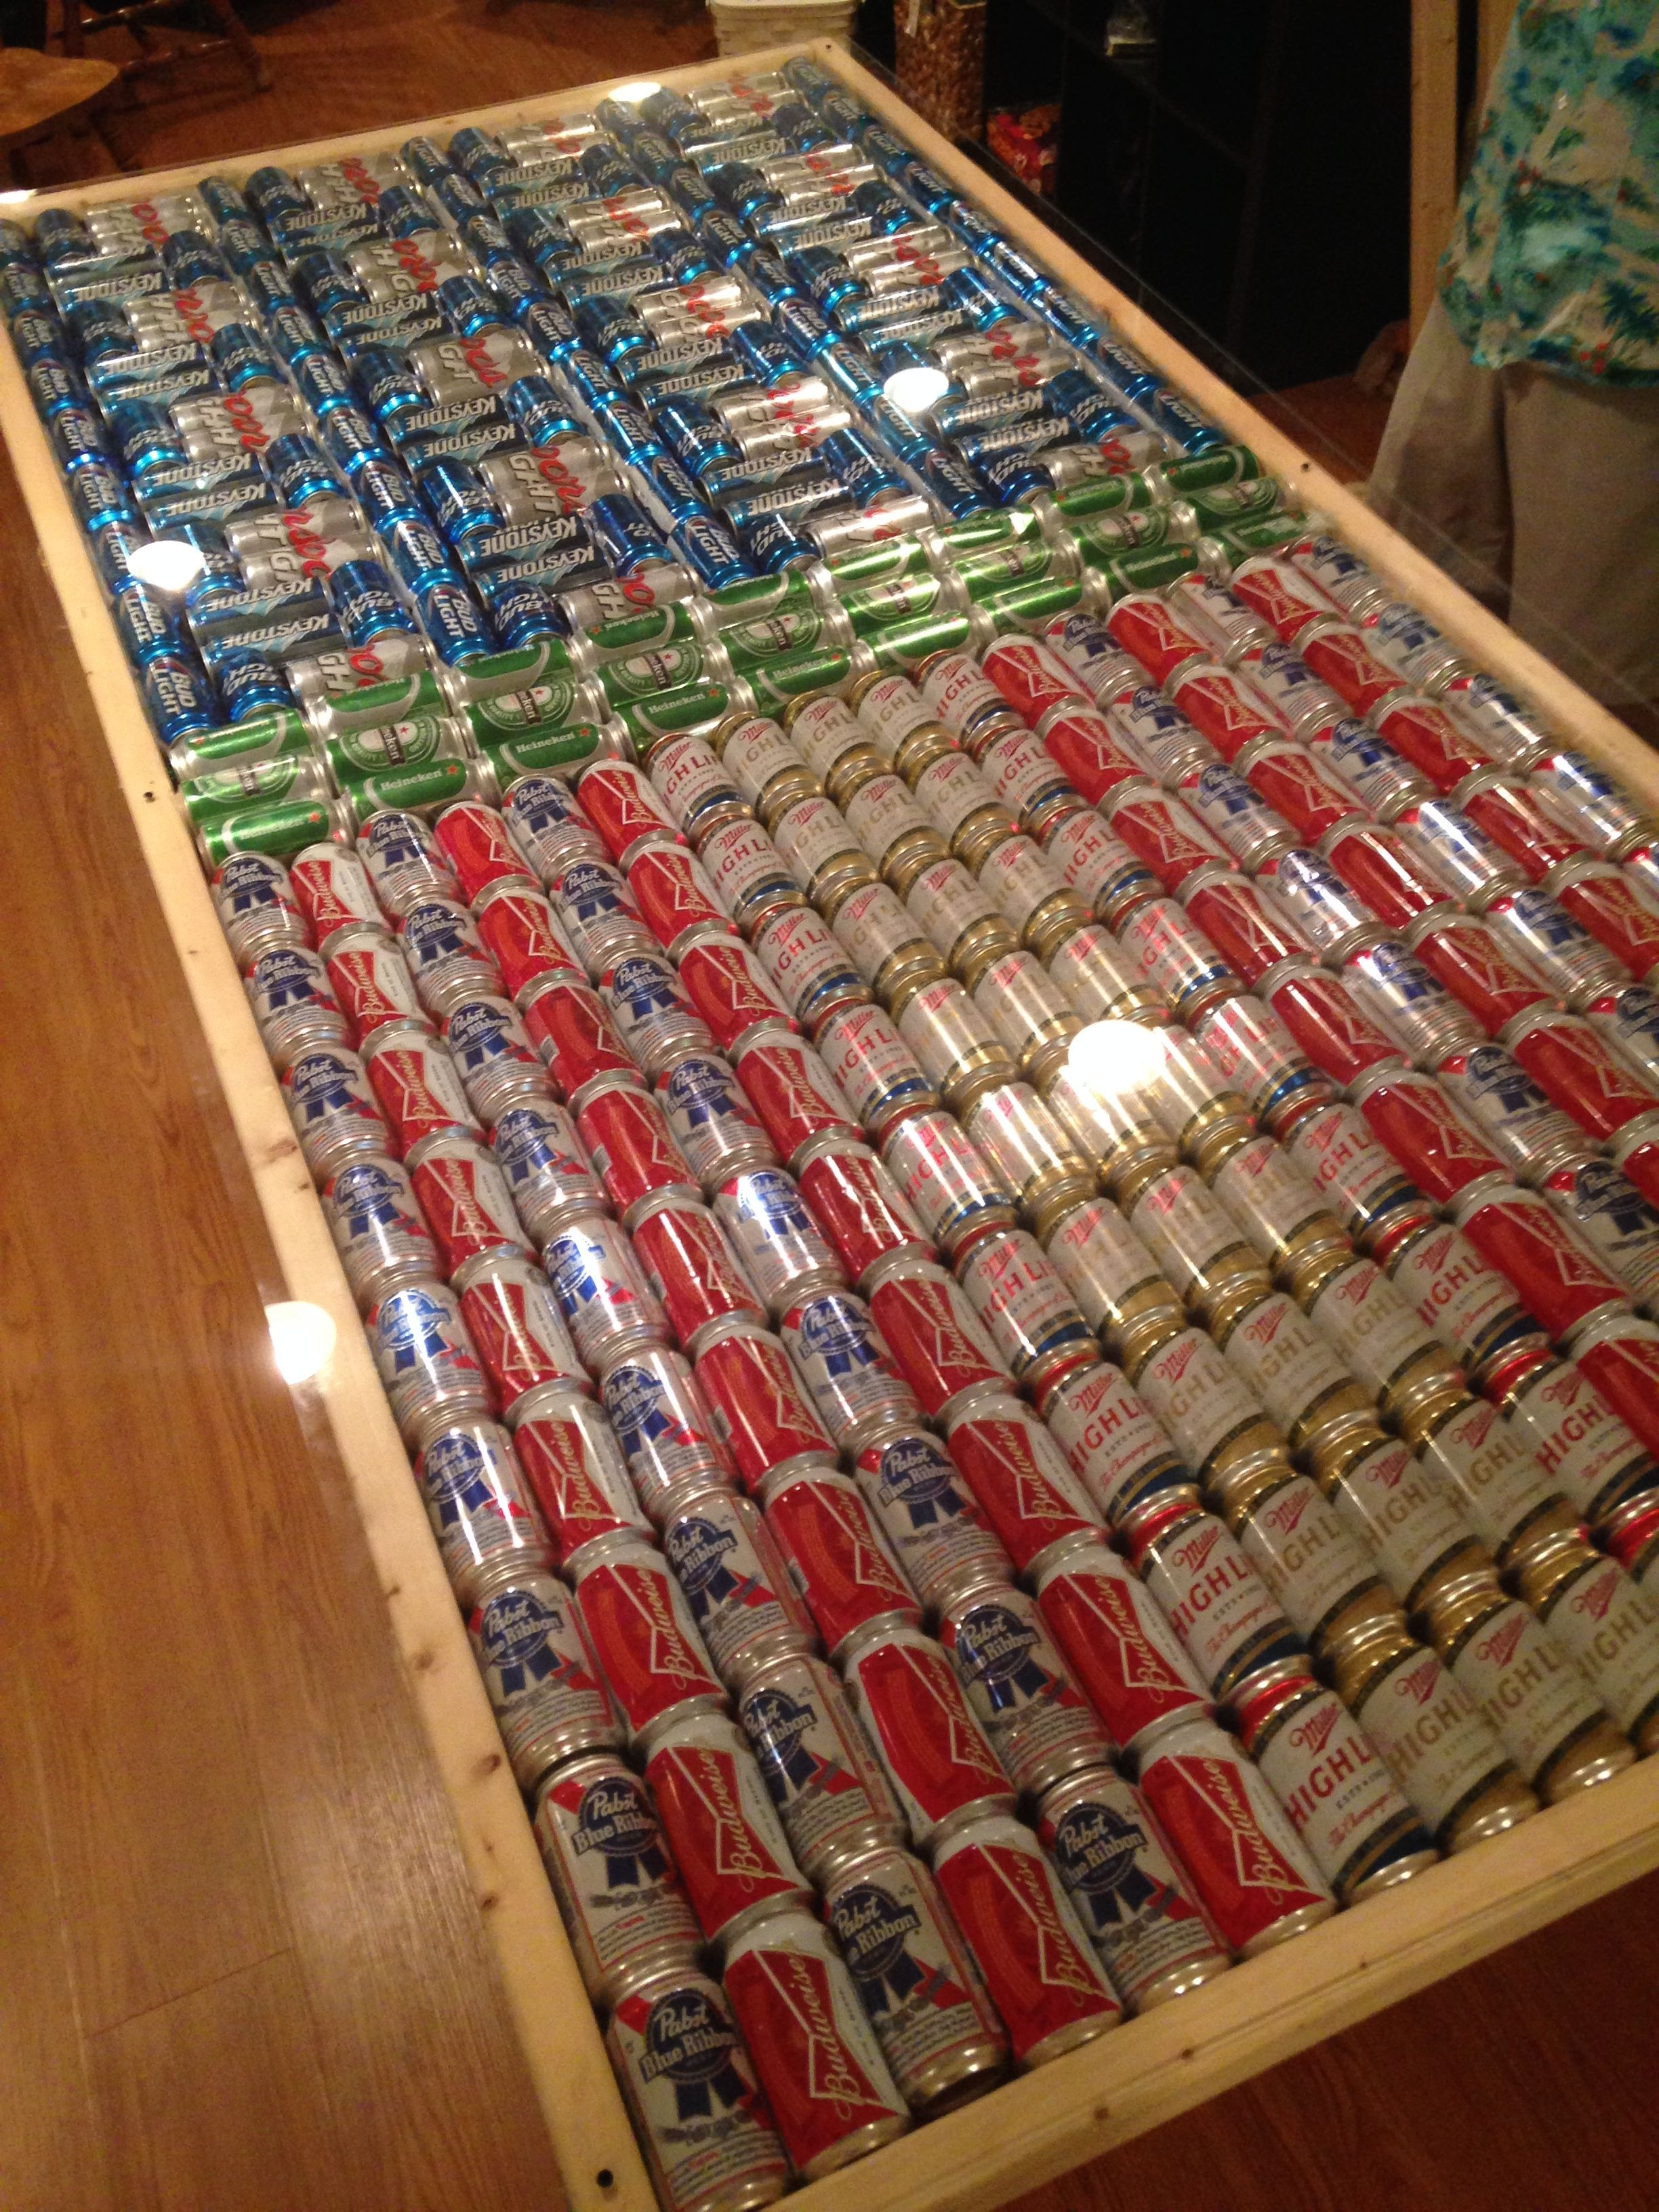 A real beer pong table tfm yall can we please make this more